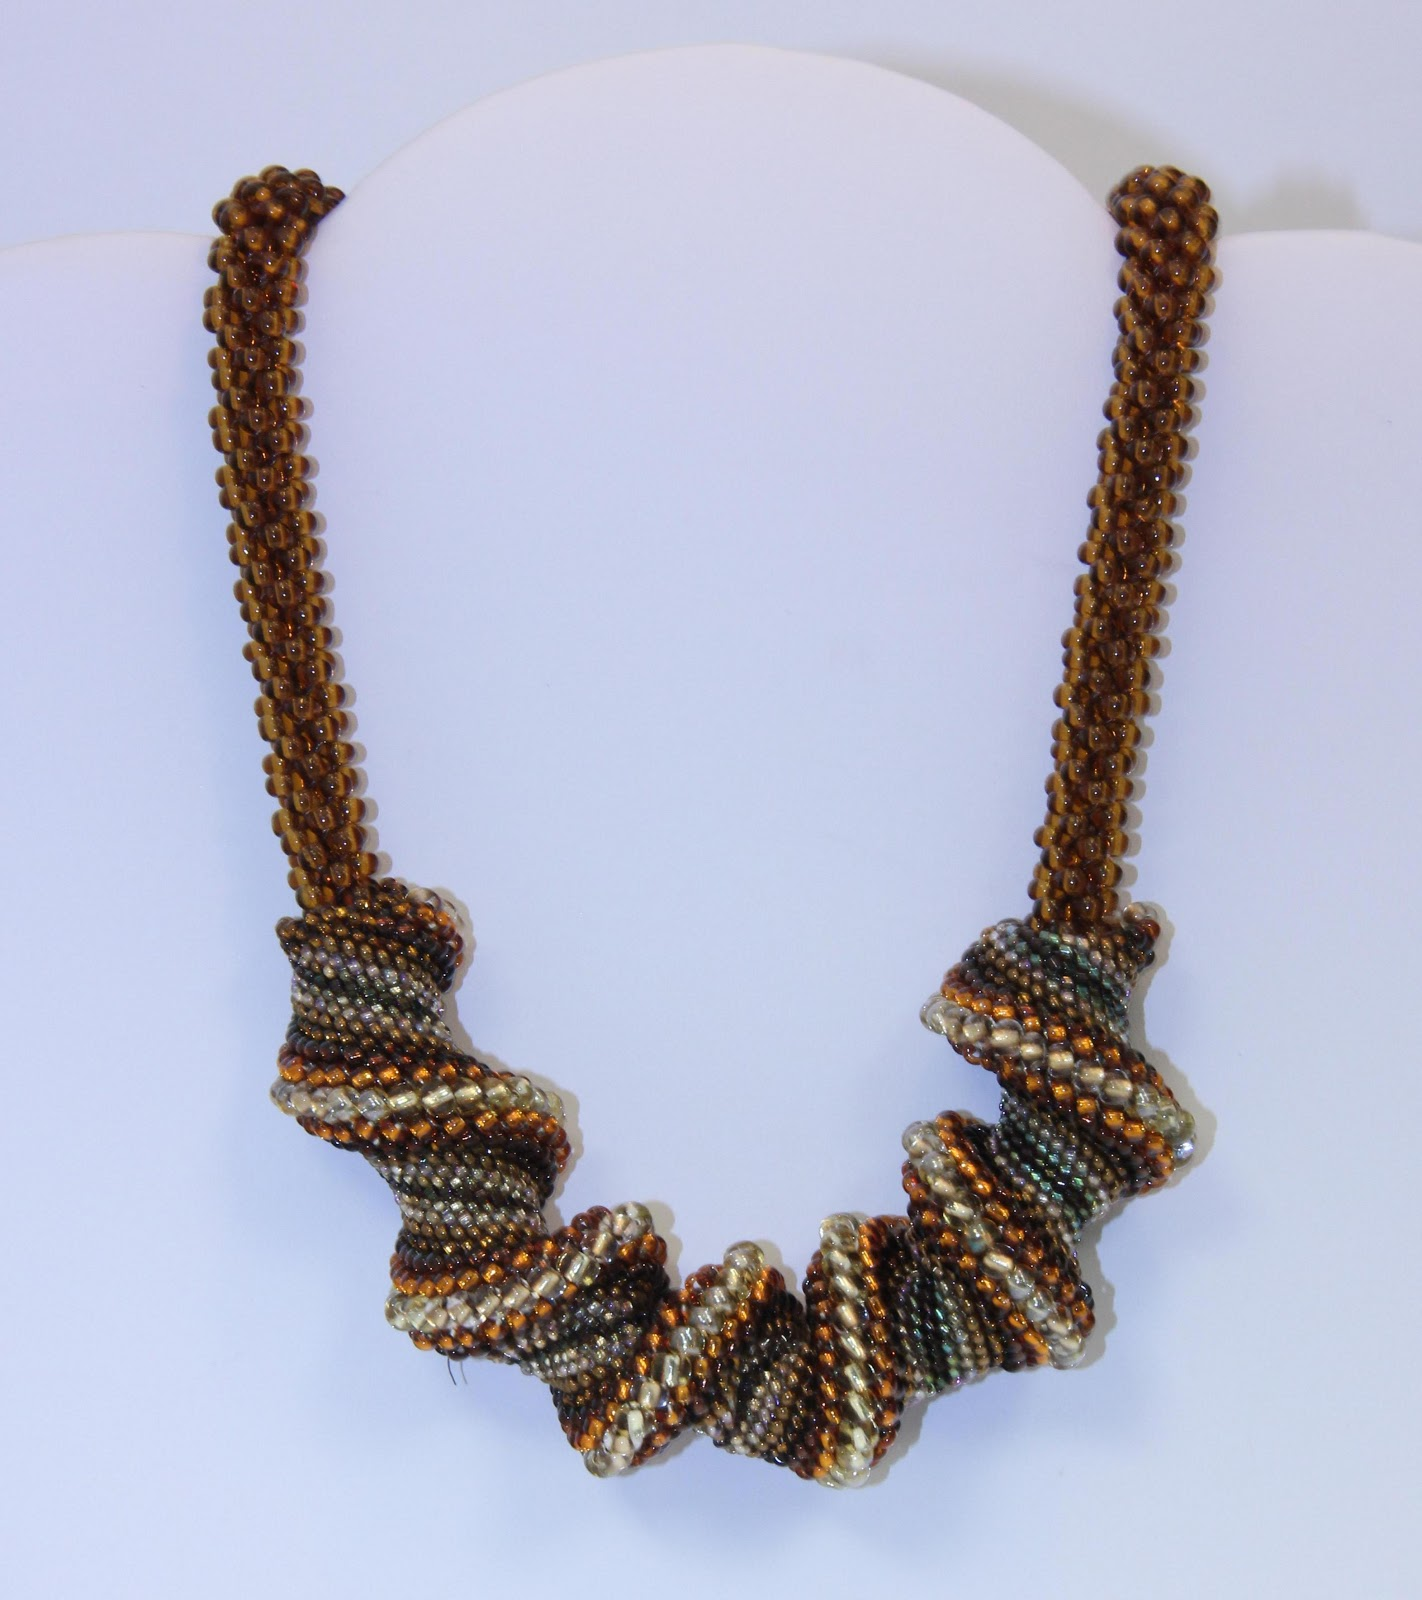 Necklace made using beaded Kumihimo—a Japanese braiding technique.